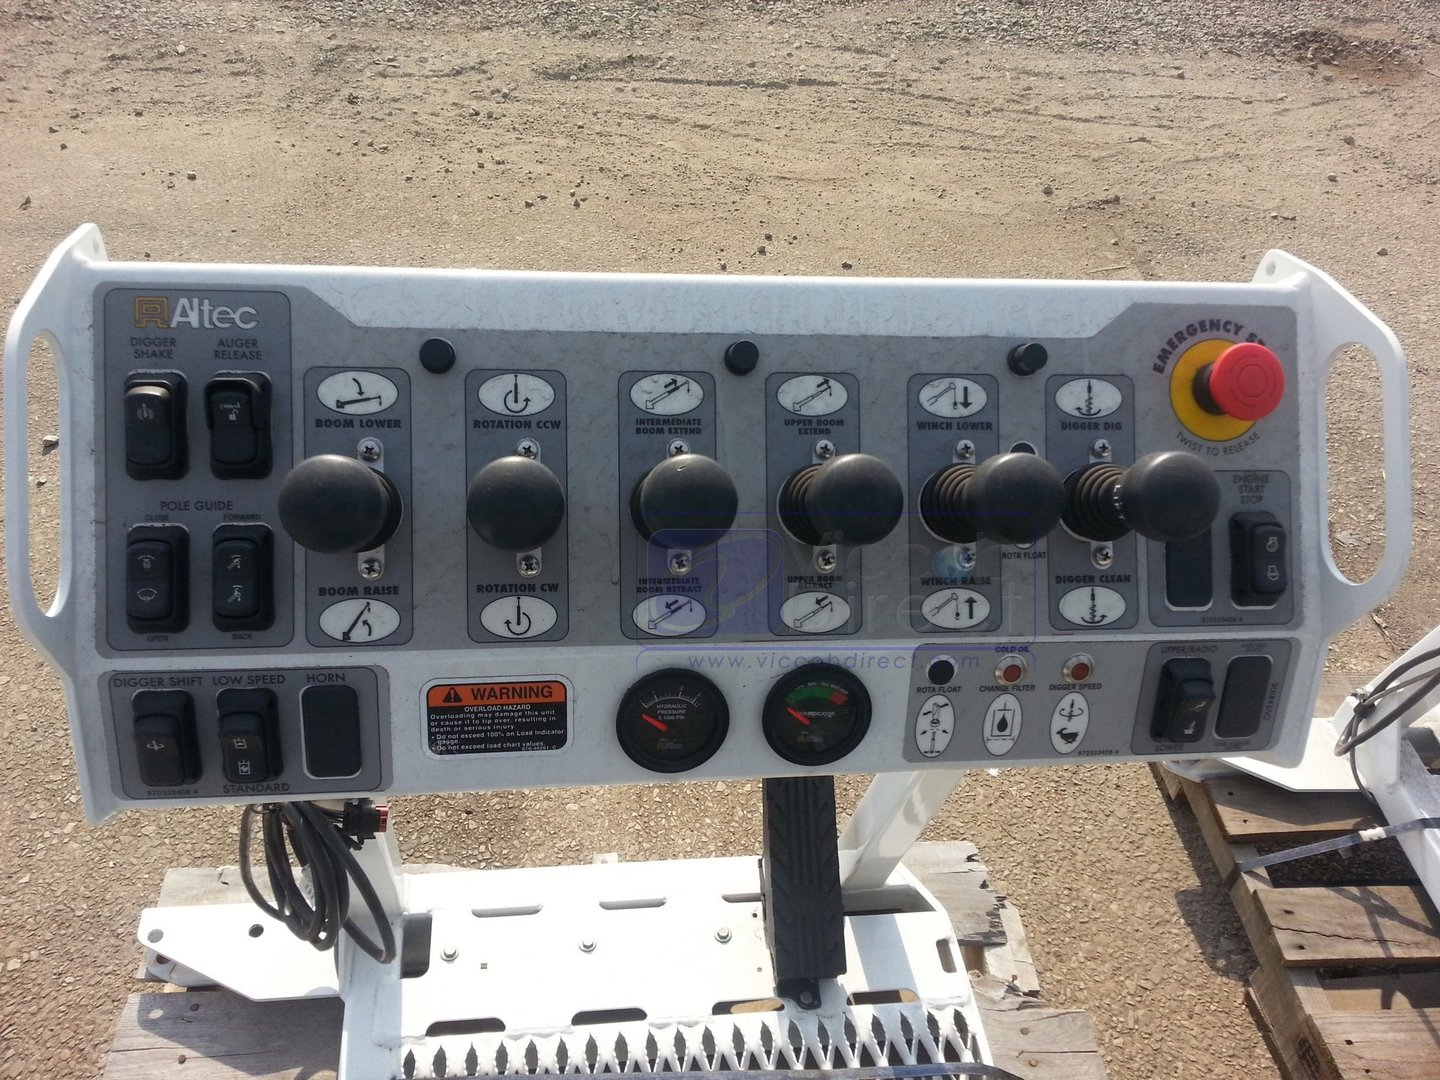 Control Station Seat for Digger Altec - Complete